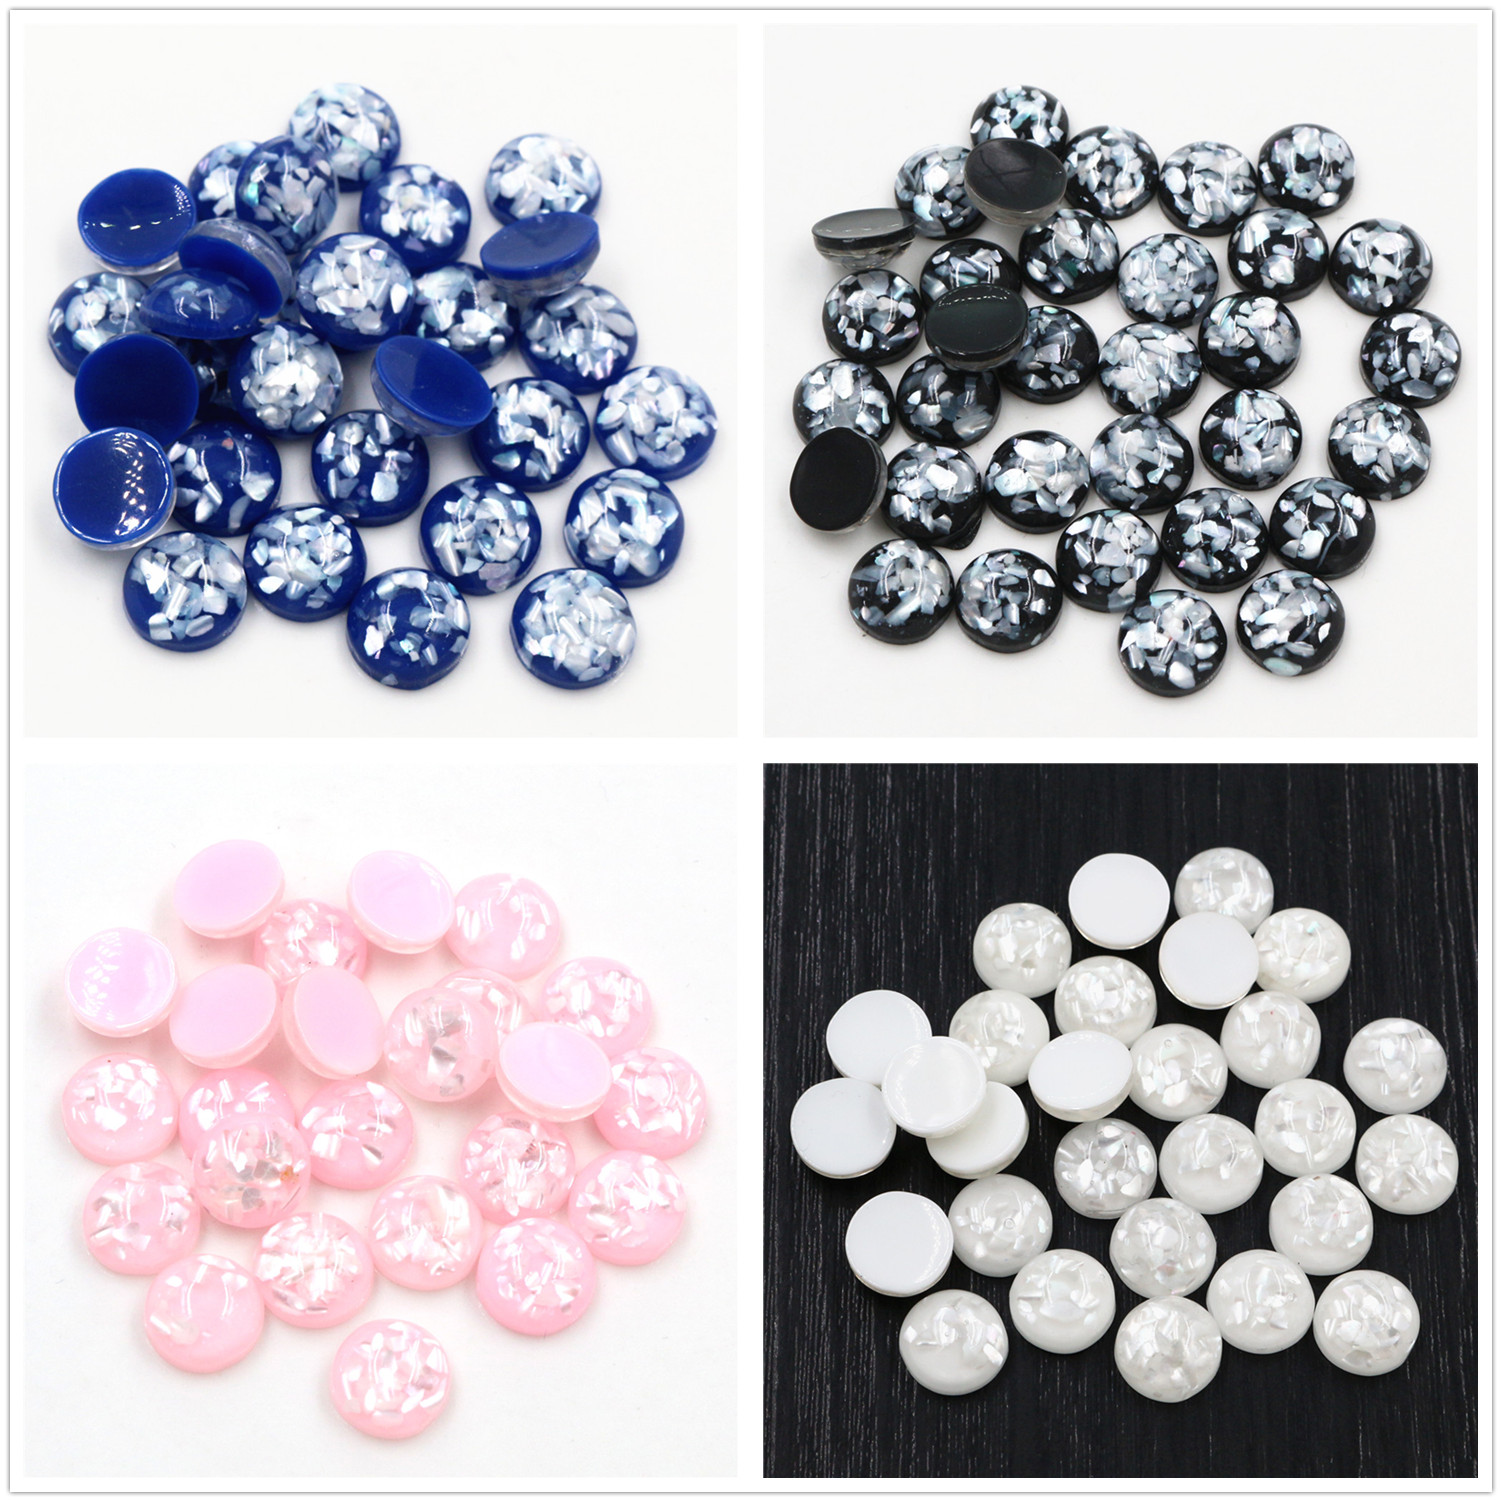 New Style 40pcs 12mm 4 Colors Built-in Real Shells Style Flat Back Resin Cabochons Fit 12mm Cameo Base Cabochons